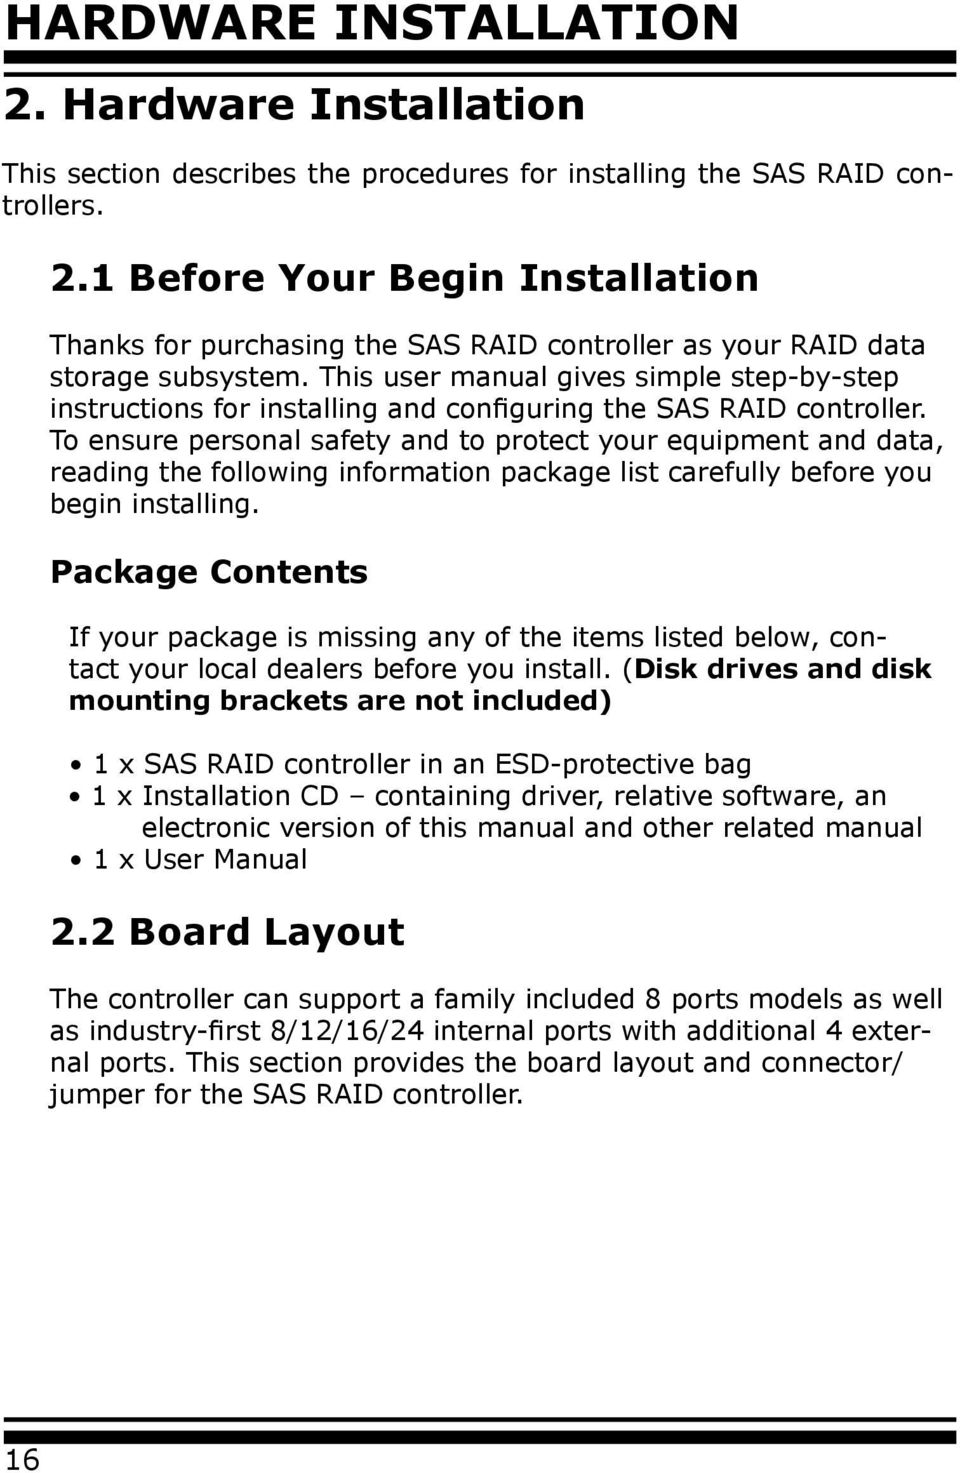 To ensure personal safety and to protect your equipment and data, reading the following information package list carefully before you begin installing.